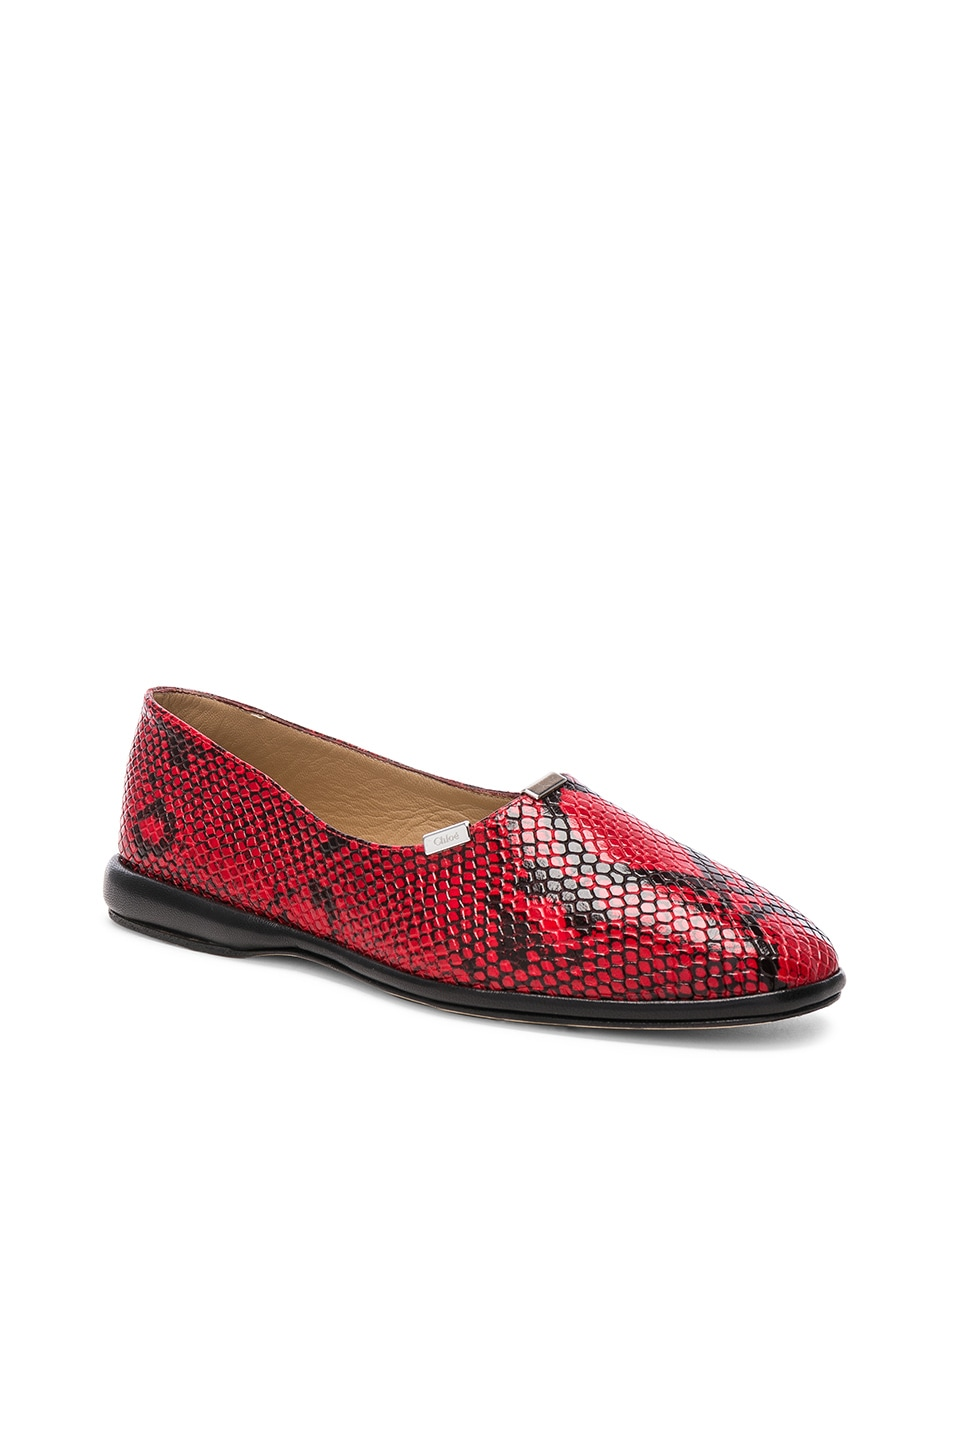 Image 2 of Chloe Skye Python Print Leather Flats in Gypsy Red